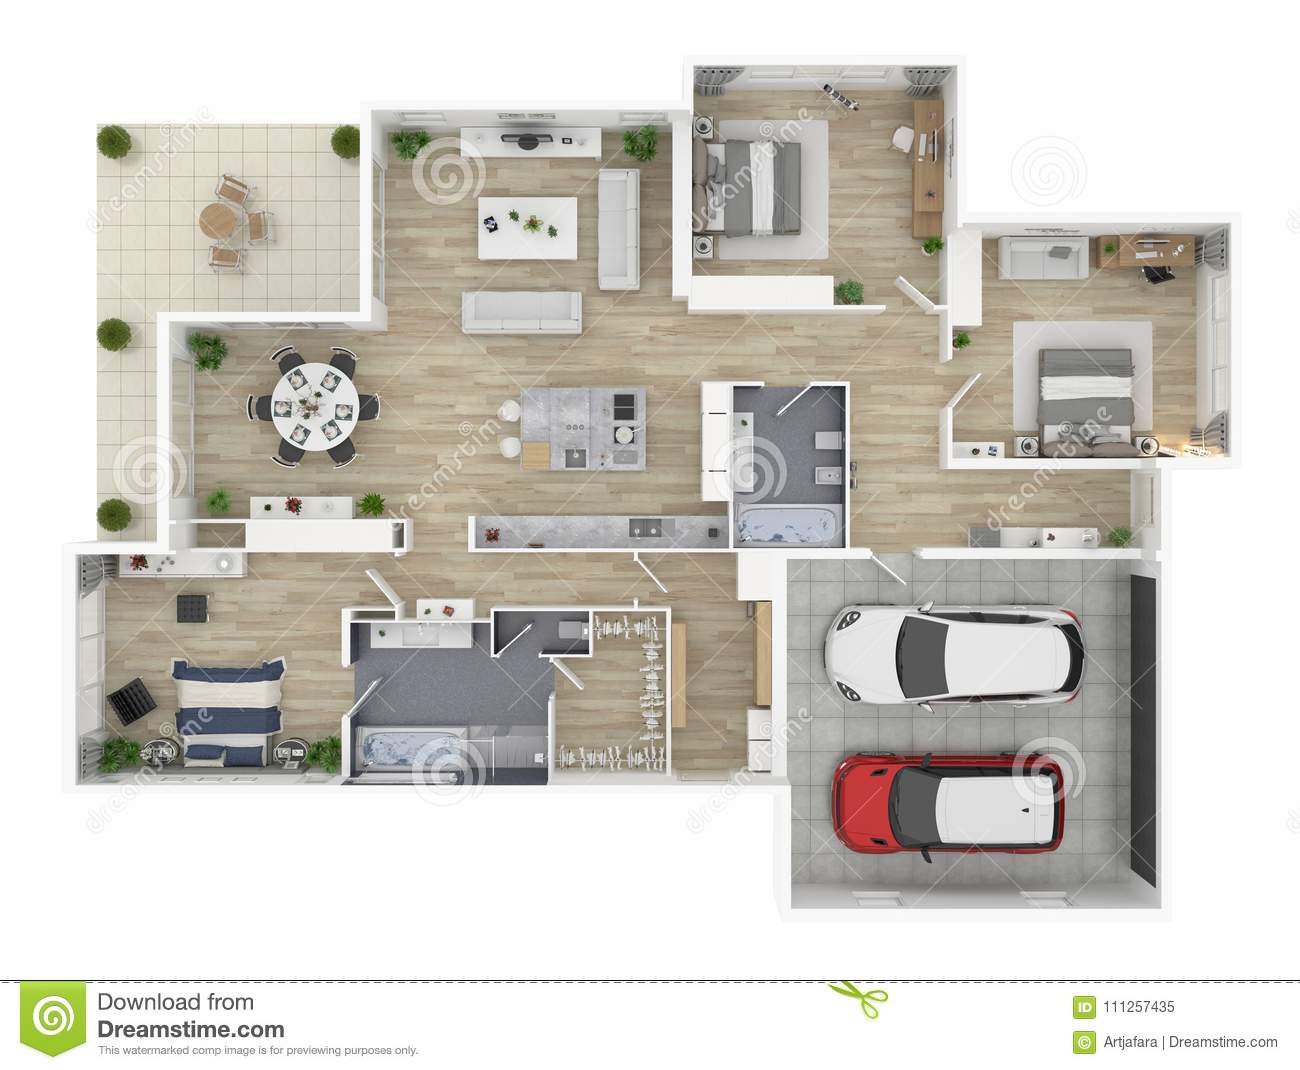 Floor Plan Of A House Top View 3D Illustration. Stock ...